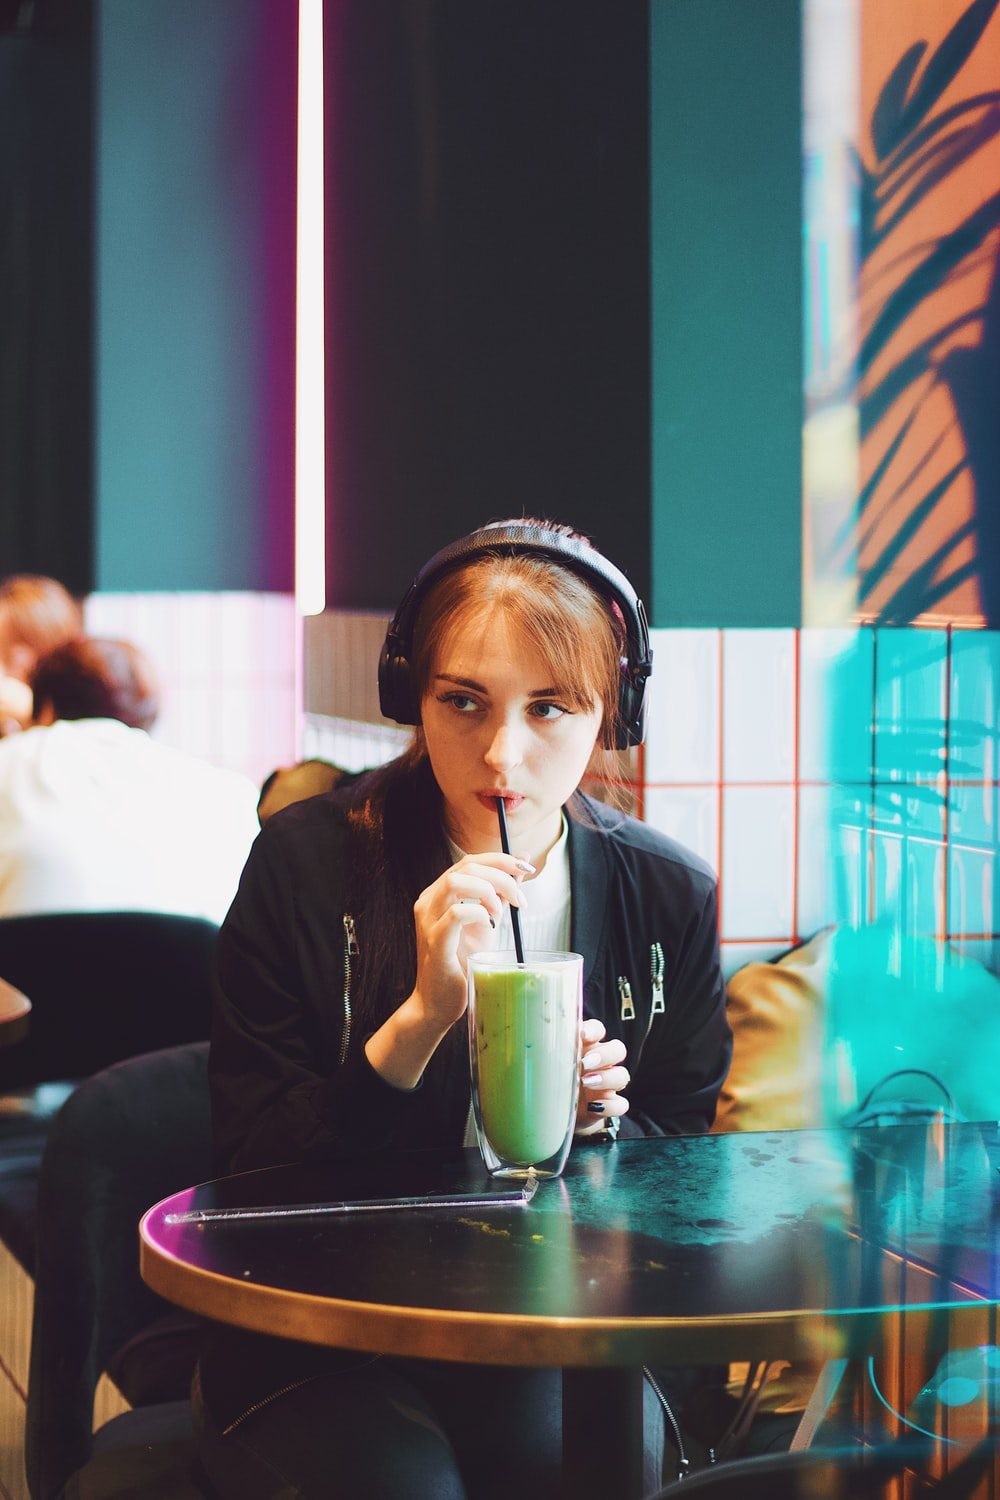 woman sitting and sipping beverage from straw